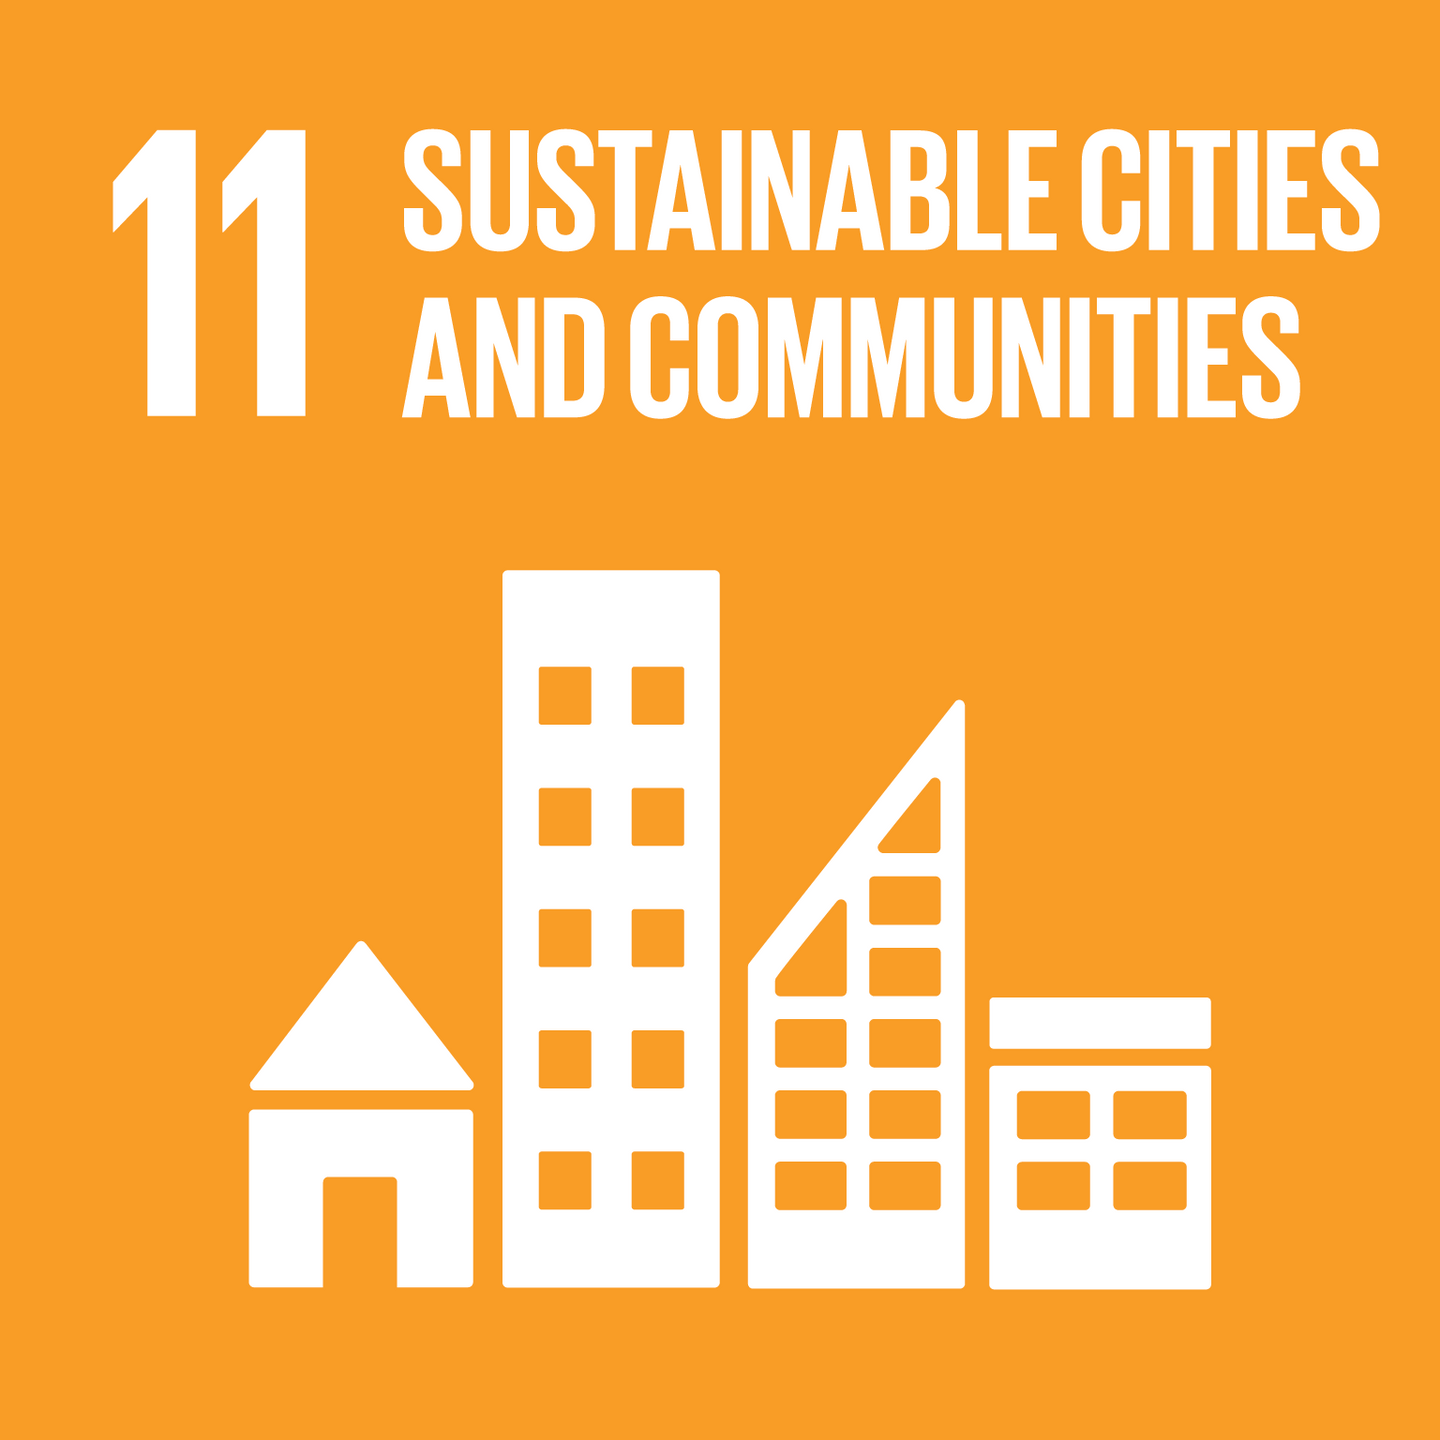 Goal 11, Sustainable Cities and Communities, of The UN's Sustainable Development Goals (SDGs)